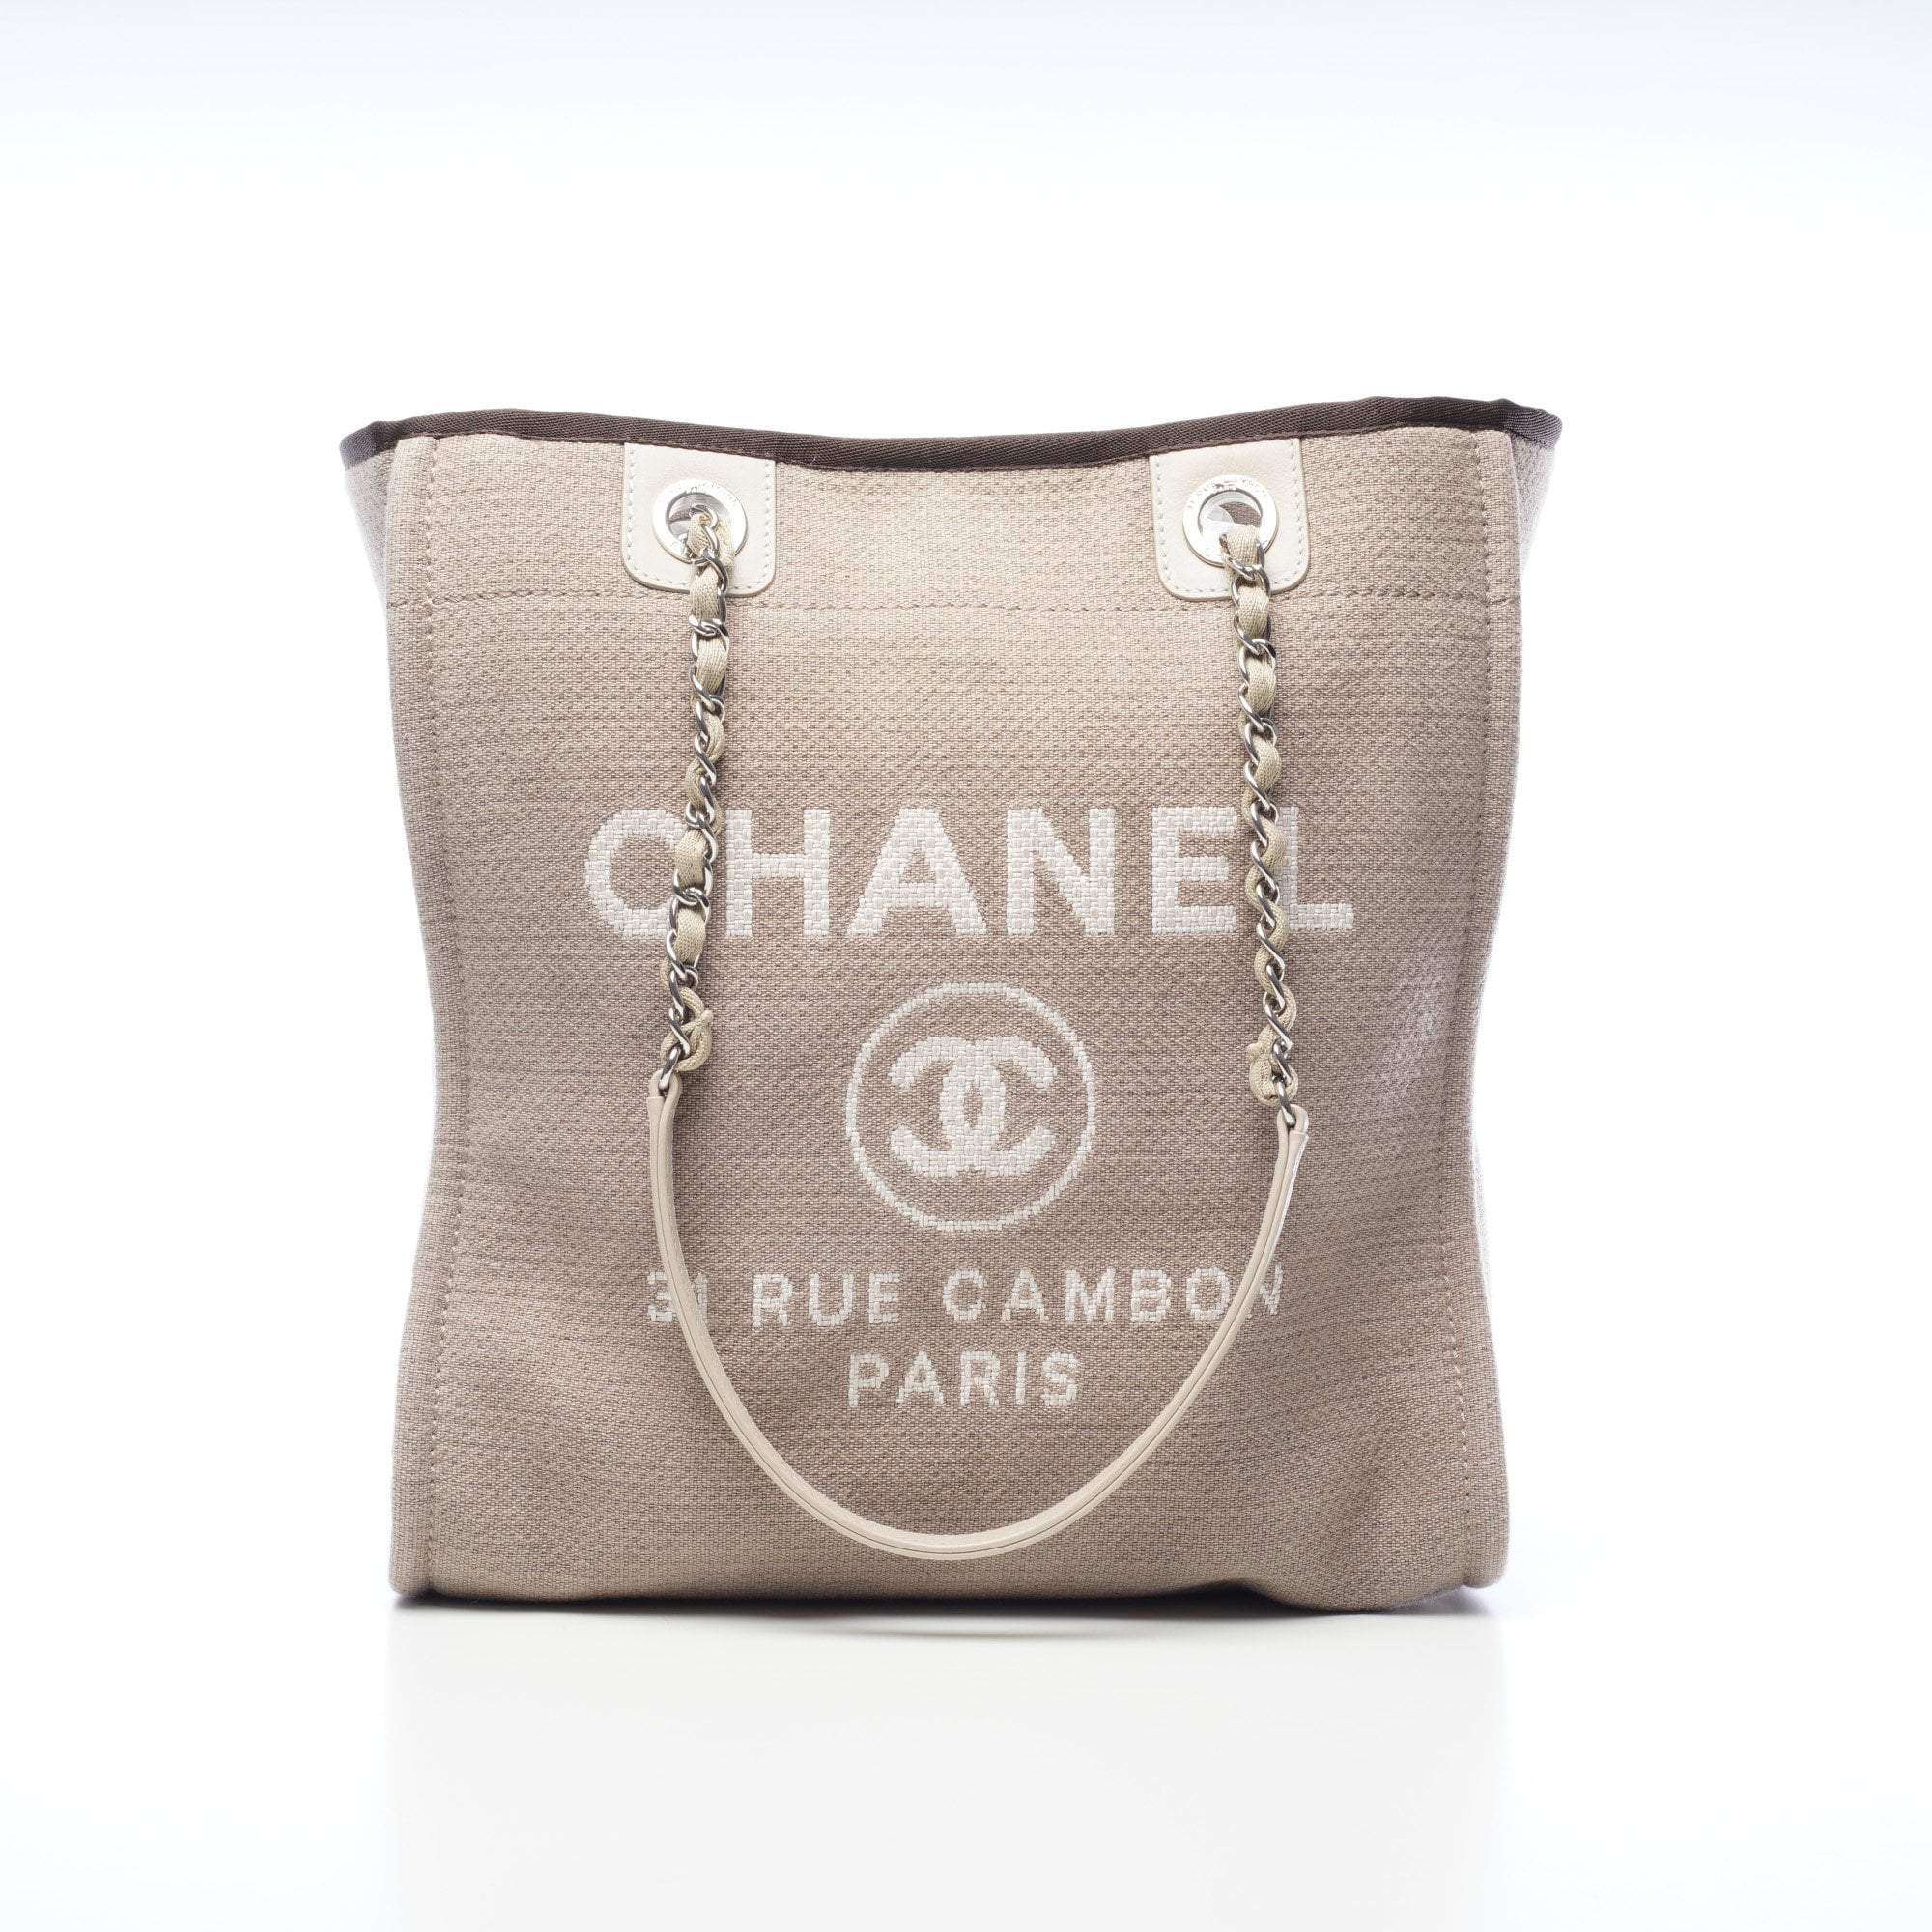 4ded6bfe5030 Chanel Khaki Medium Deauville Canvas Tote – Garderobe